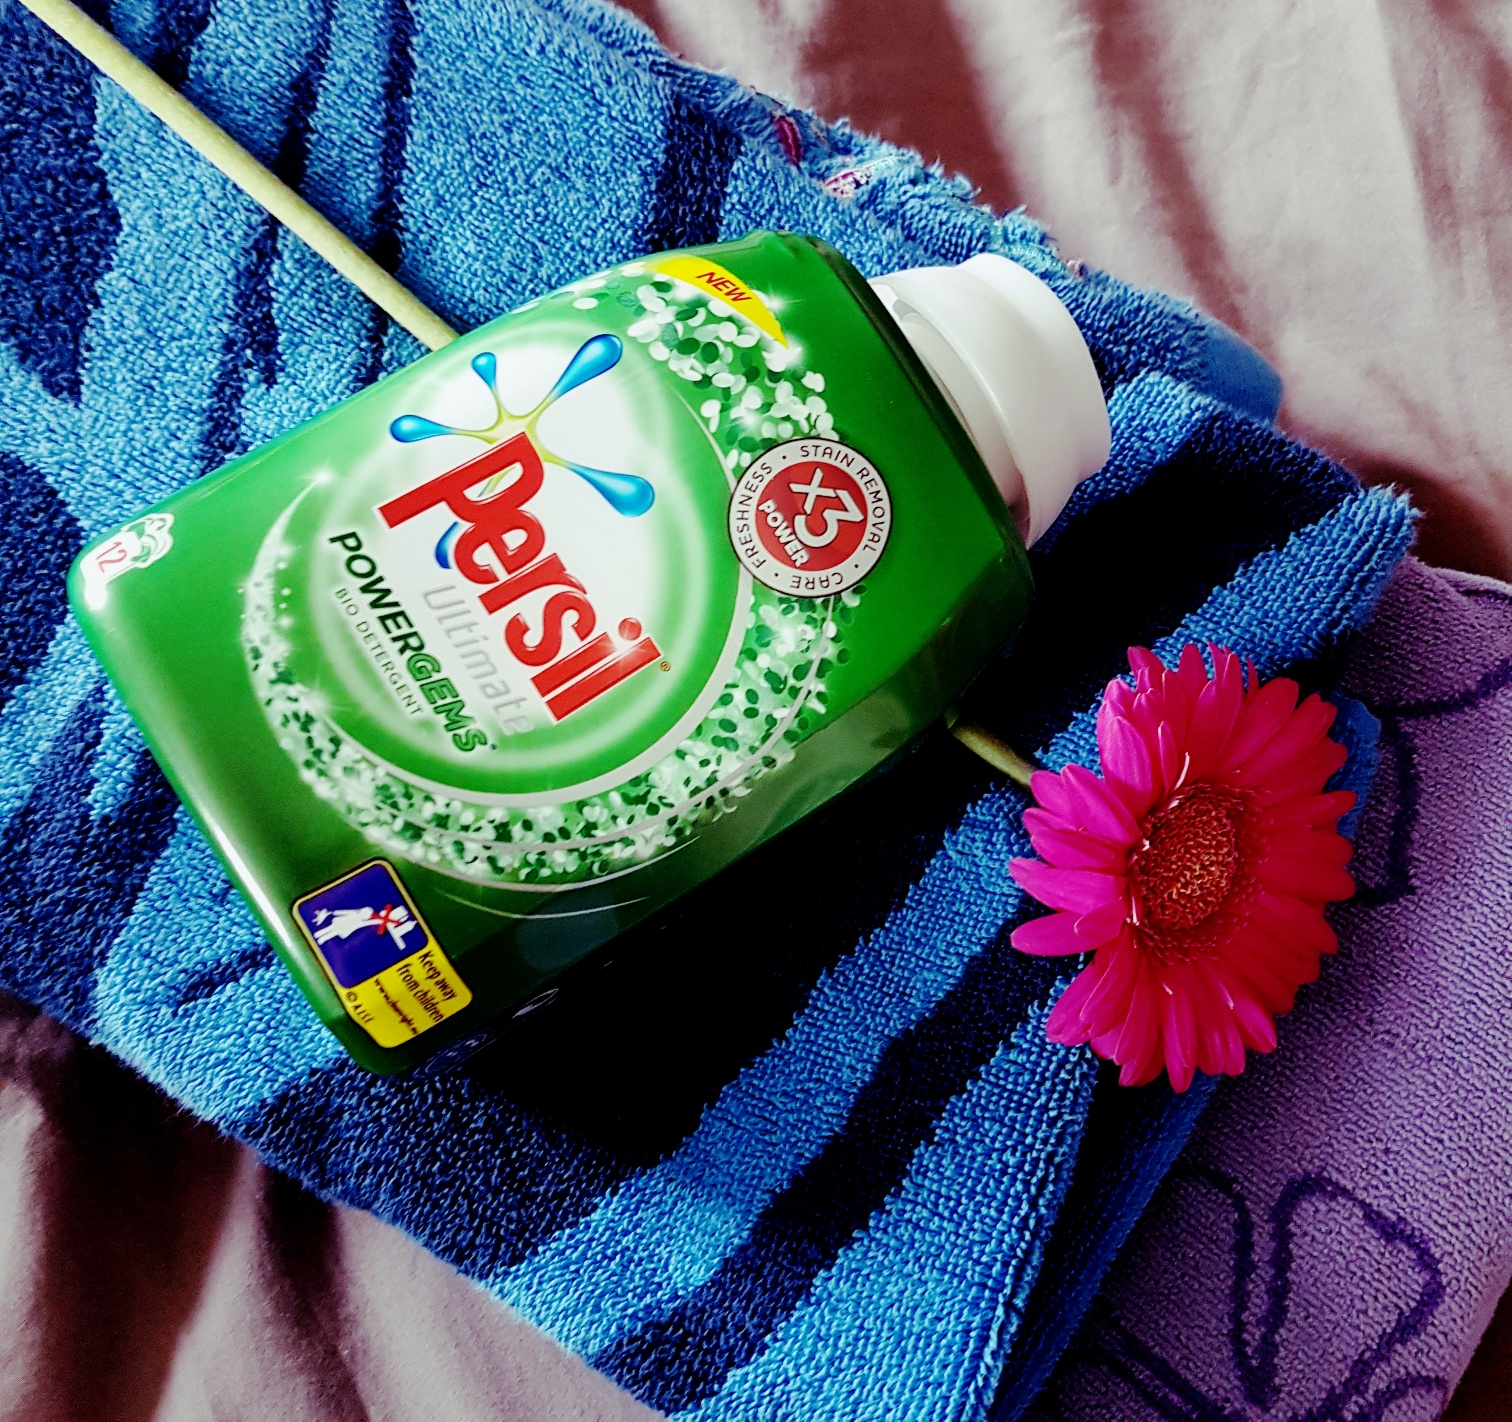 persil products